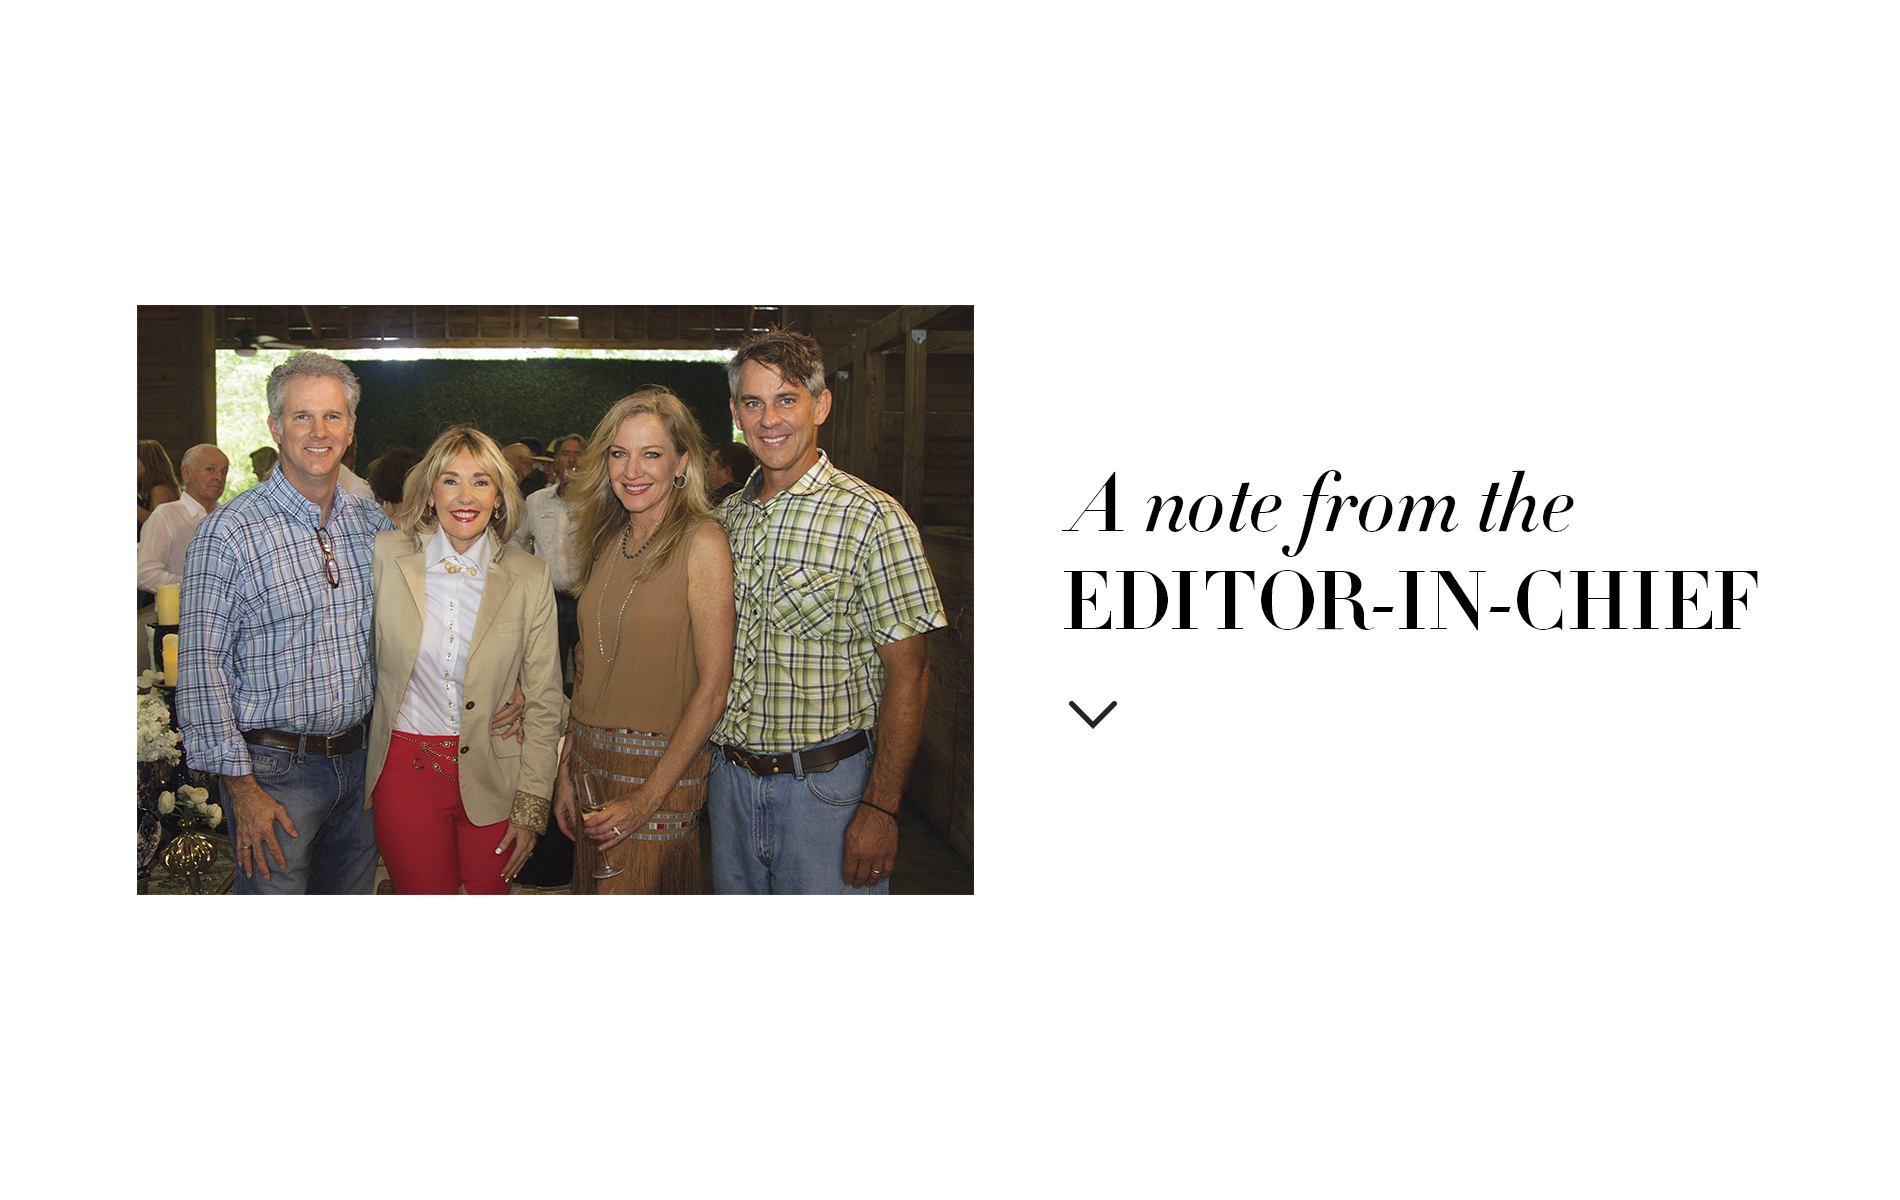 Gerald and Lisa Burwell, VIE's publisher and editor-in-chief, respectively, with Laurie and Taylor Hood